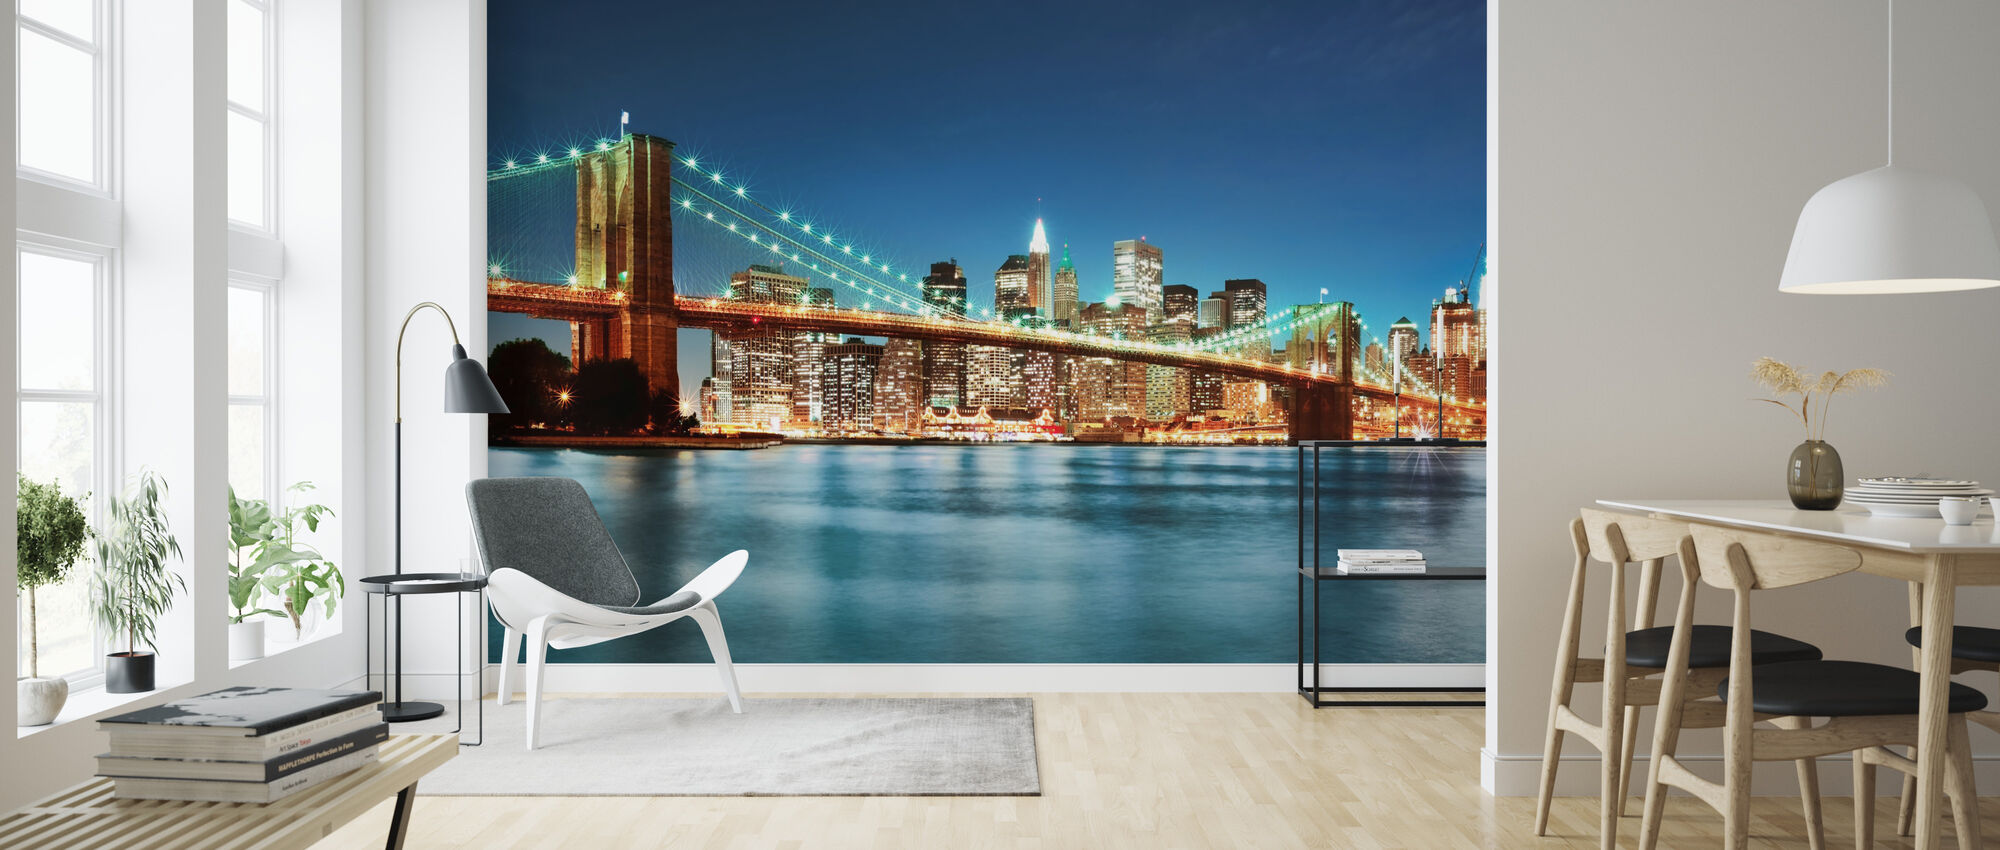 Bright Brooklyn Bridge - Wallpaper - Living Room